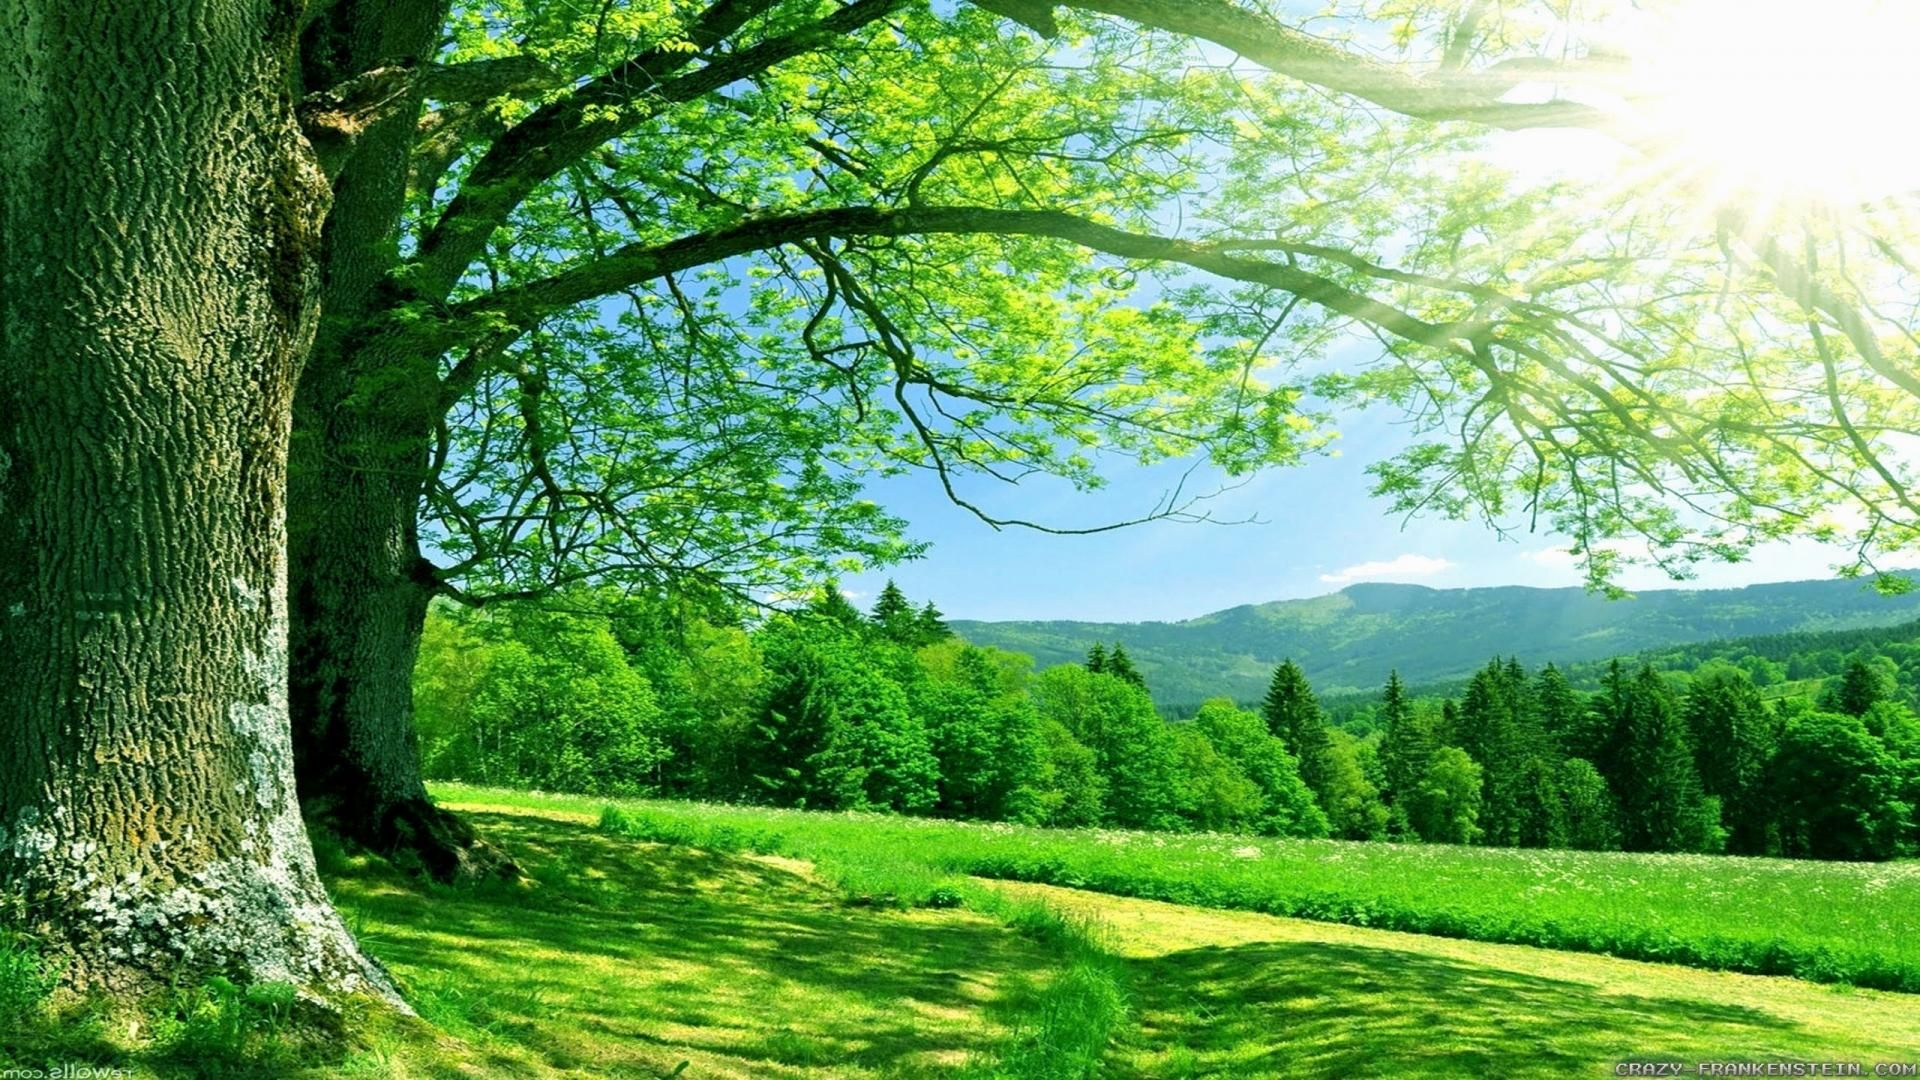 Natural Green Landscape Hd 1920x1080 Need Iphone 6s Plus Wallpaper Background For Iphon Summer Desktop Backgrounds Landscape Wallpaper Nature Wallpaper